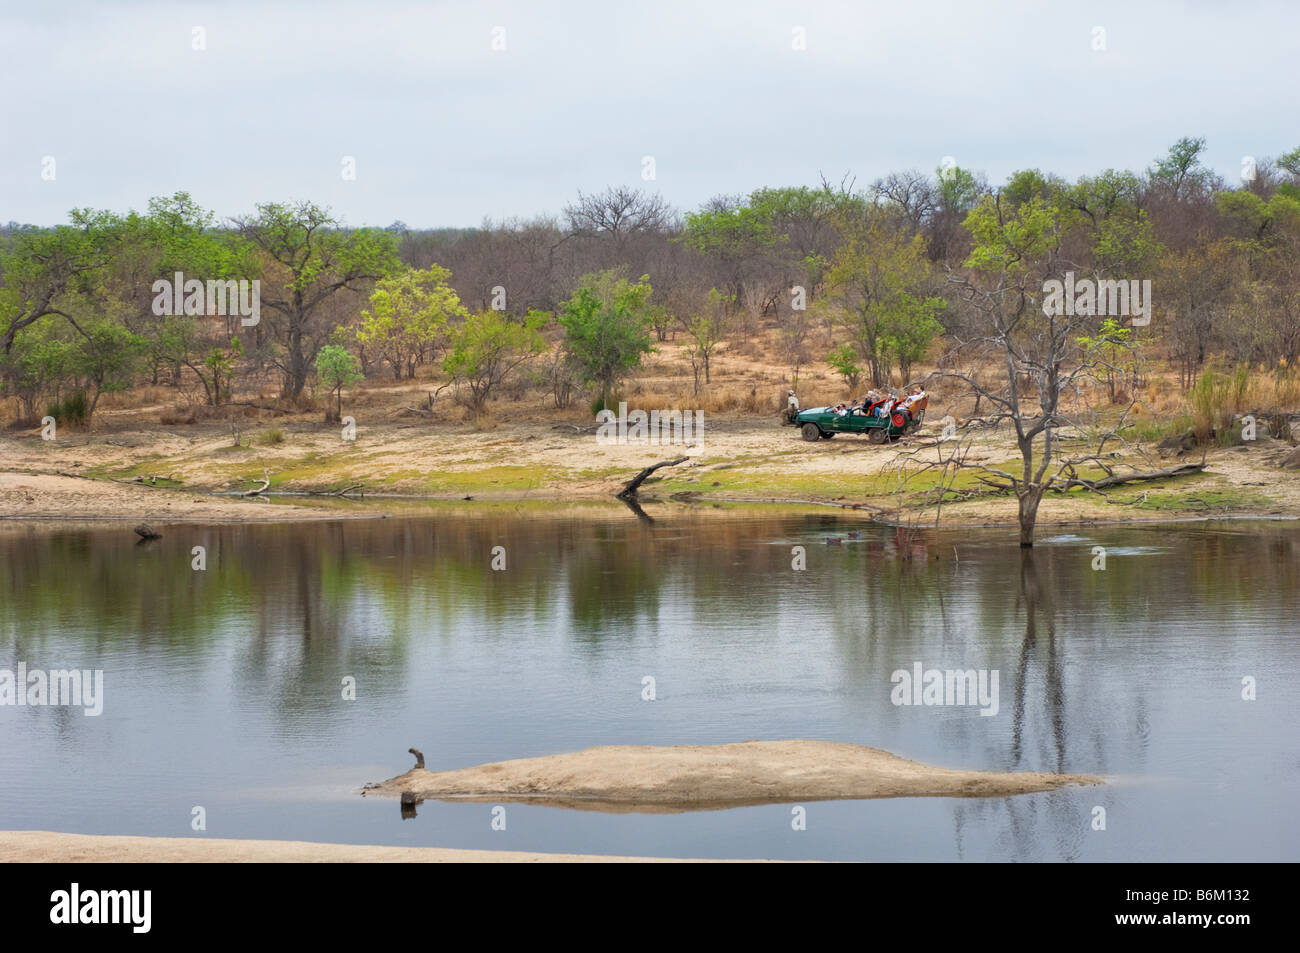 wide view landscape SAFARI Game drive jeep vehicle people south africa desert red dust dirt road drive way safari - Stock Image